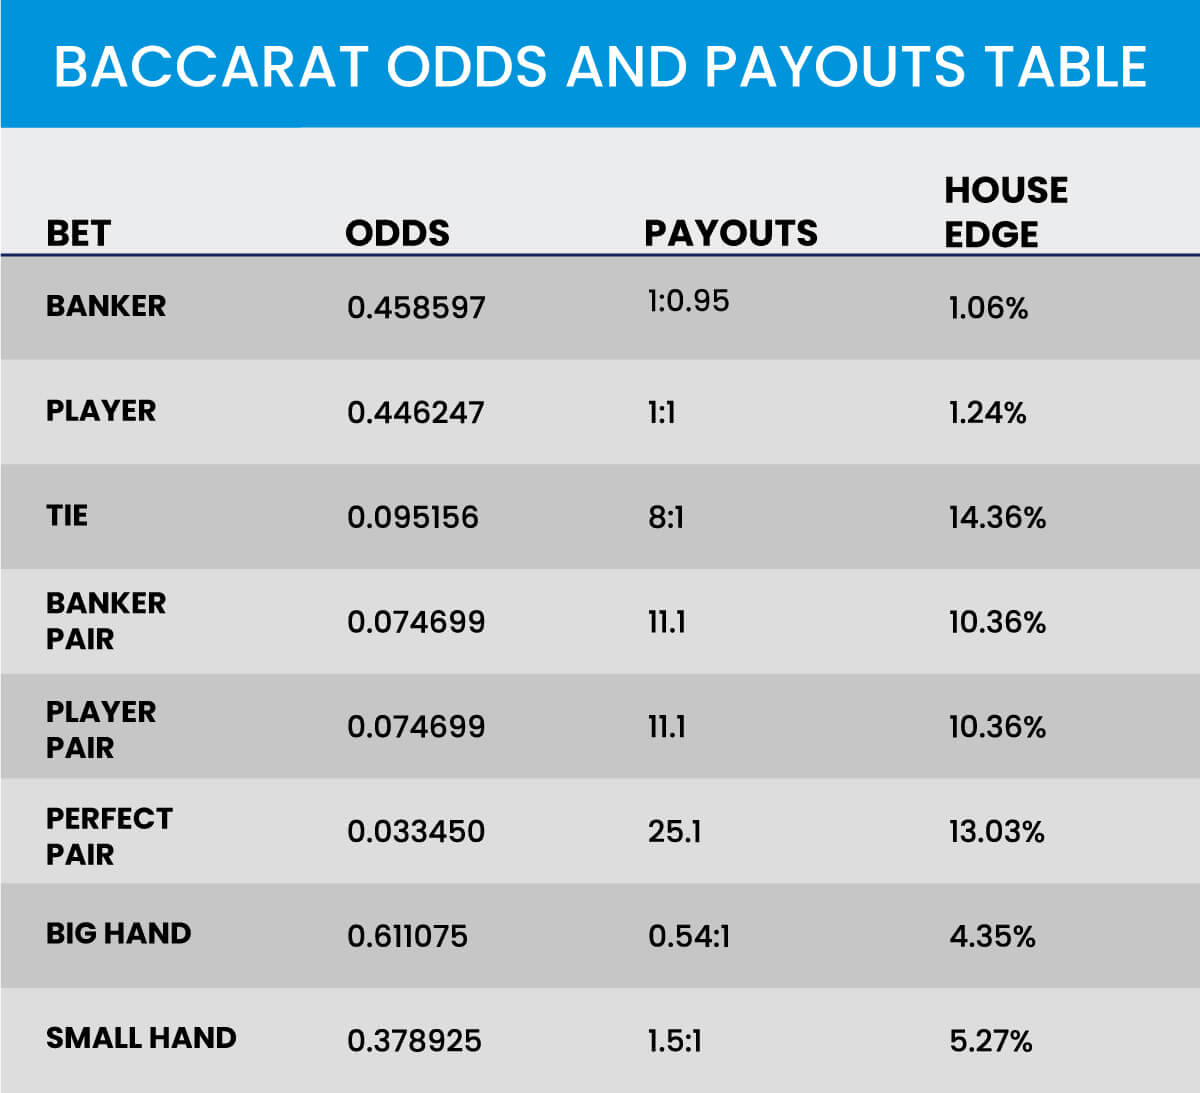 Baccarat Odds and Payouts Table